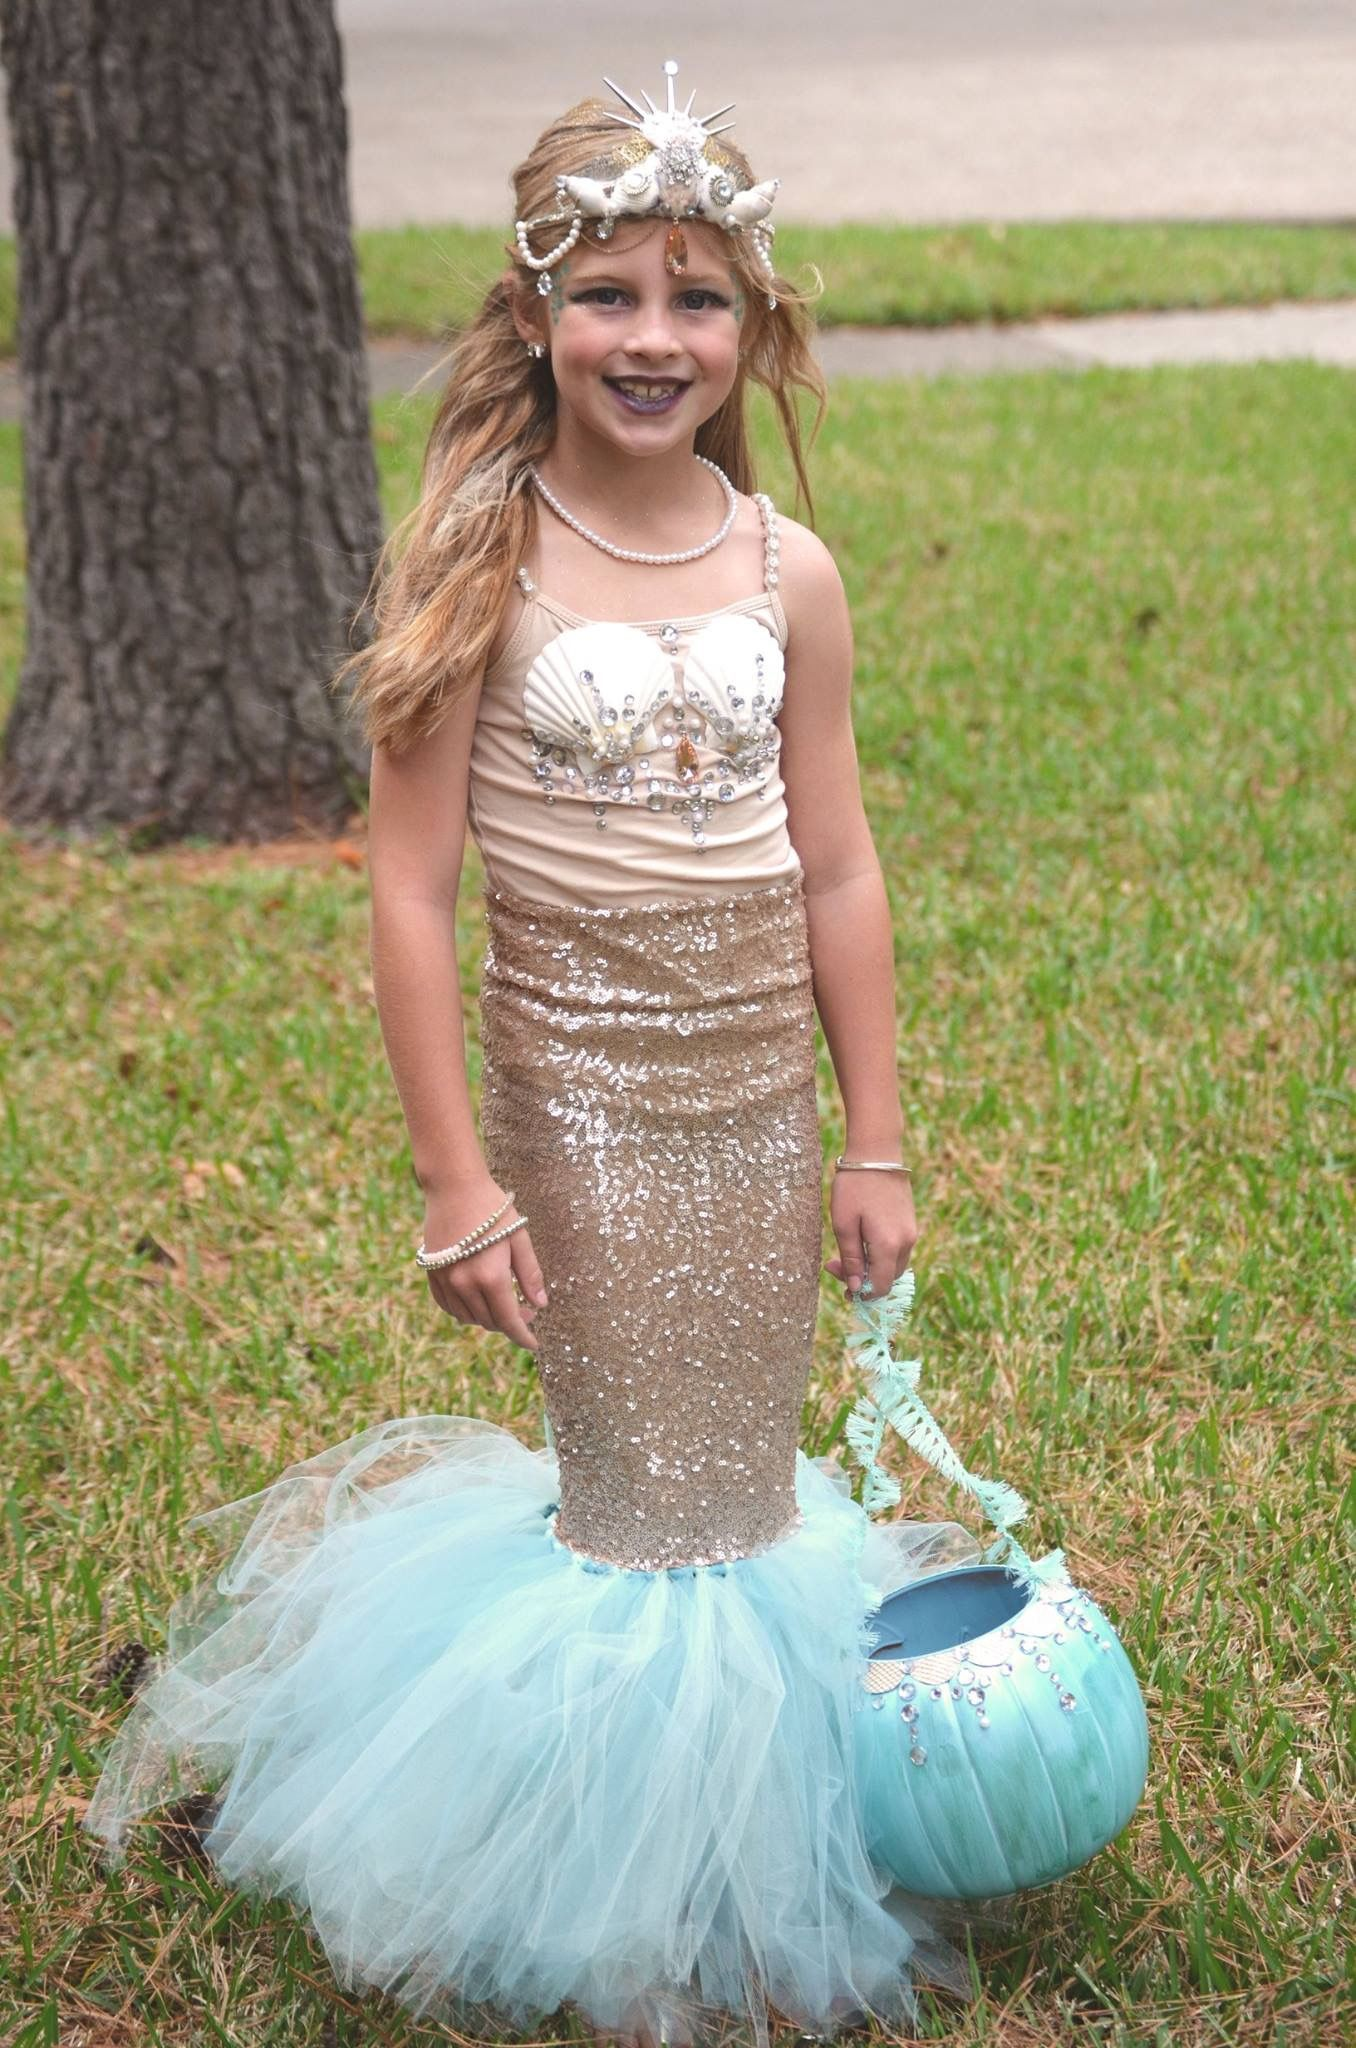 Diy mermaid costume childrens halloween costume mermaid crown diy mermaid costume childrens halloween costume mermaid crown mermaid skirt mermaid top solutioingenieria Image collections